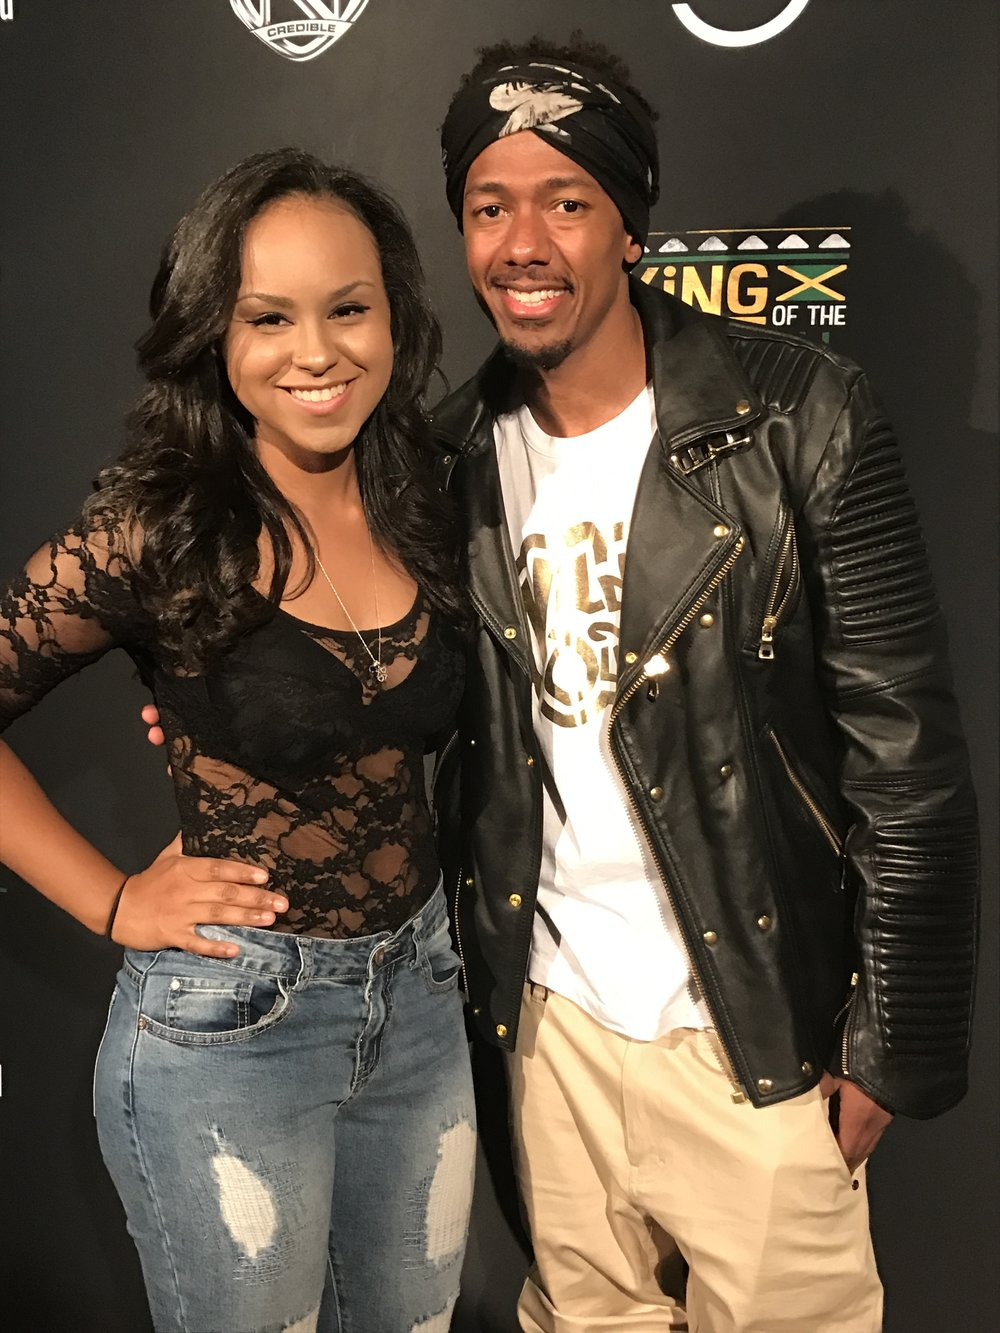 """Nick Cannon & Natalie Nichole -- """"King of The Dance Hall"""" Red Carpet."""